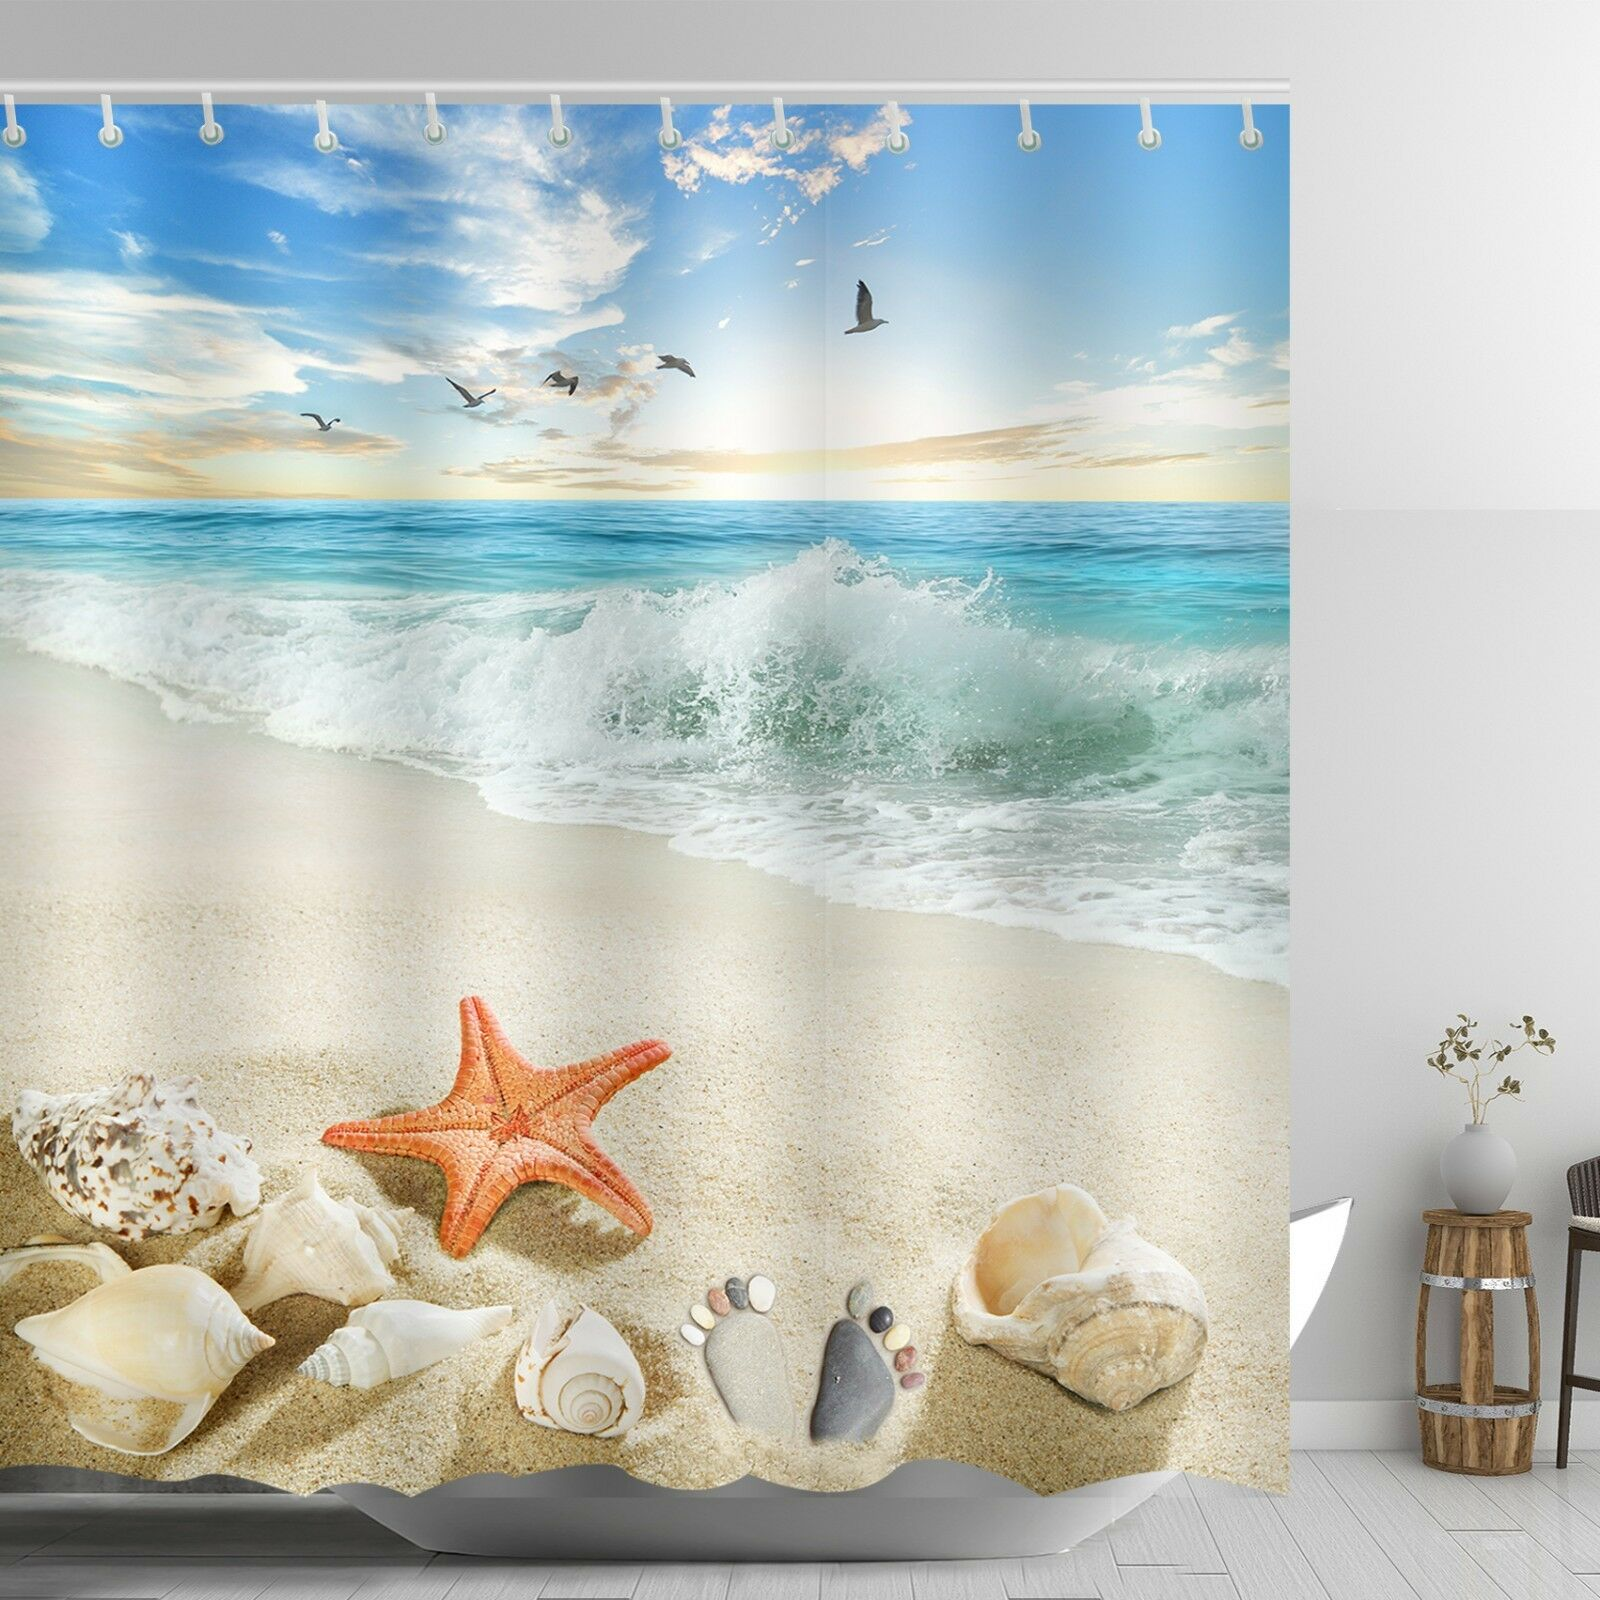 Details About Beach Themed Shower Curtain Red Starfish Ankle Stone Sandy Coastal Scene Decor